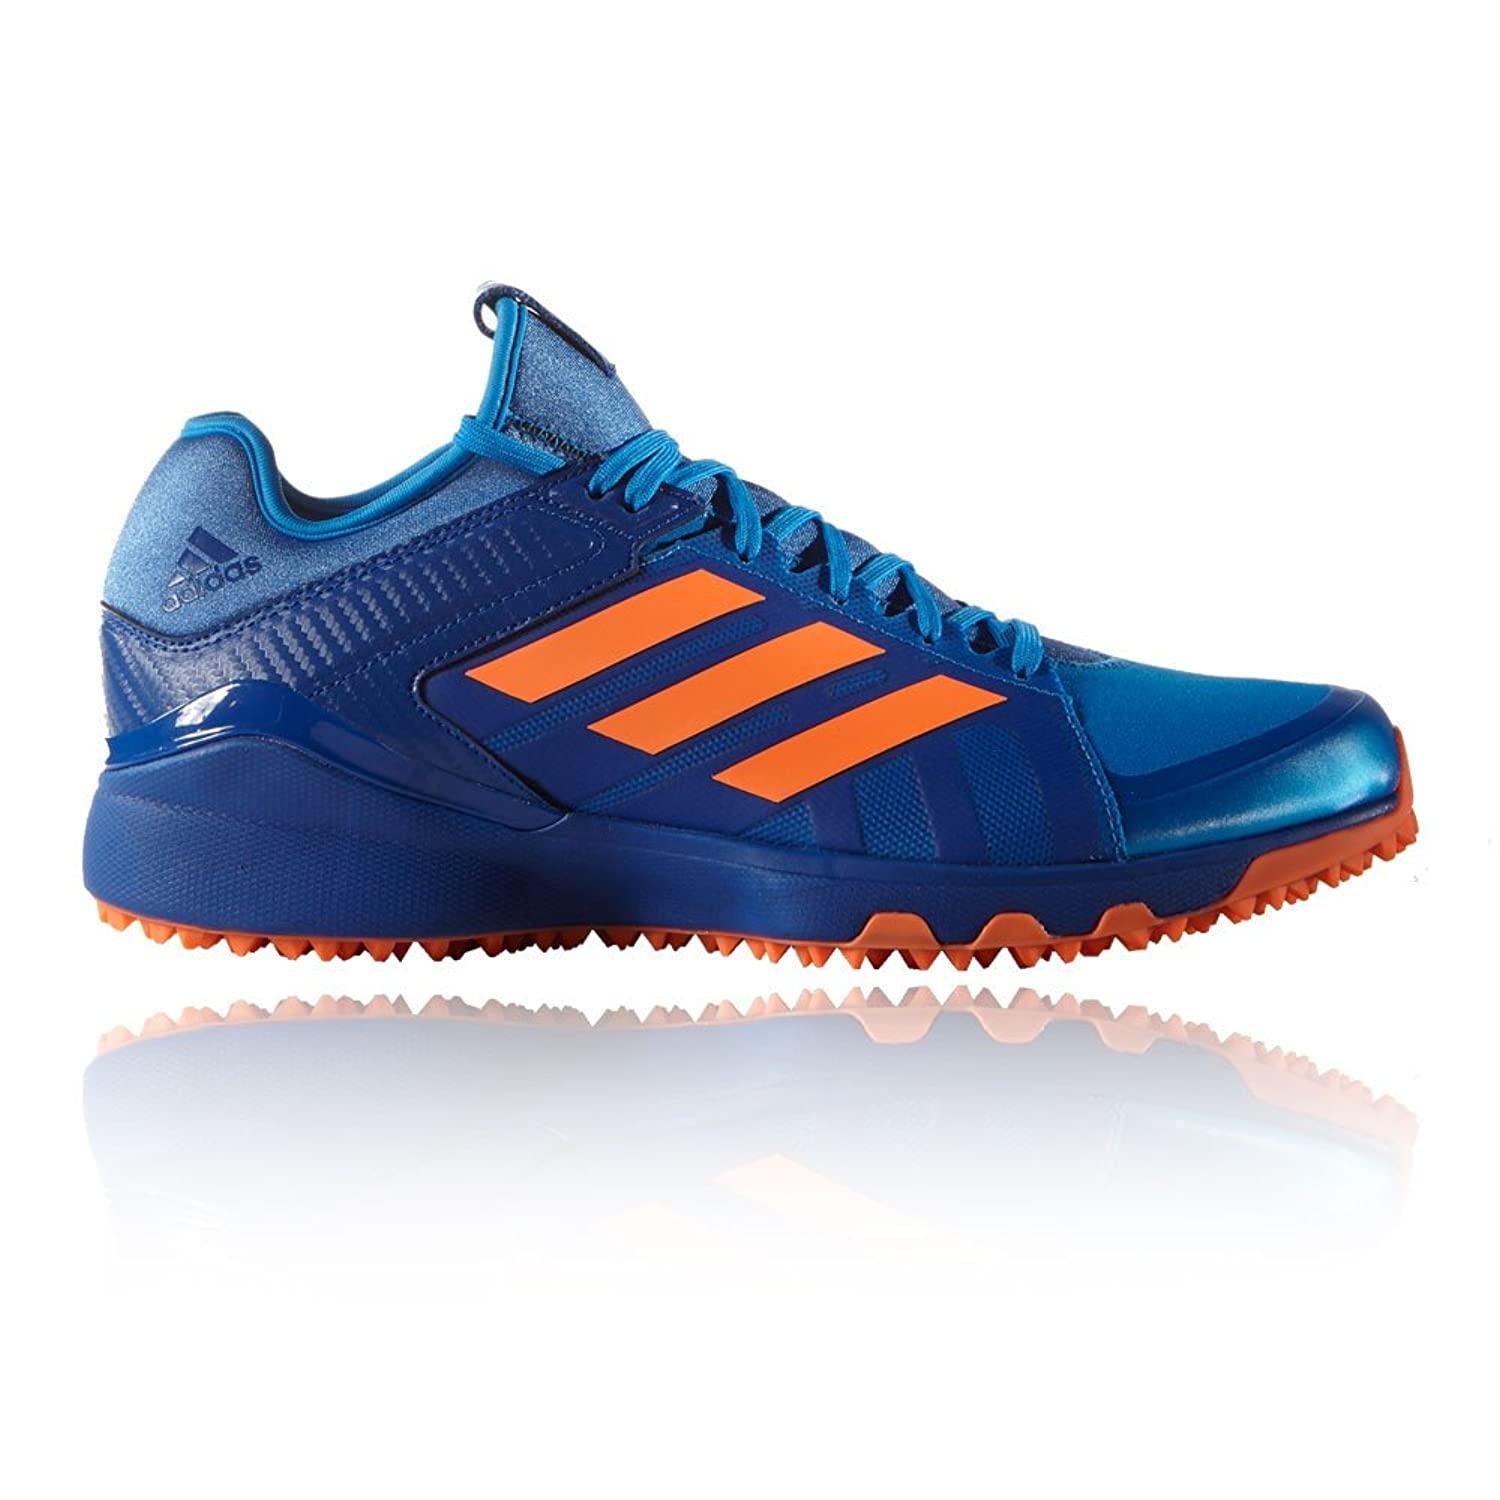 Adidas Hockey Lux Blue-Orange